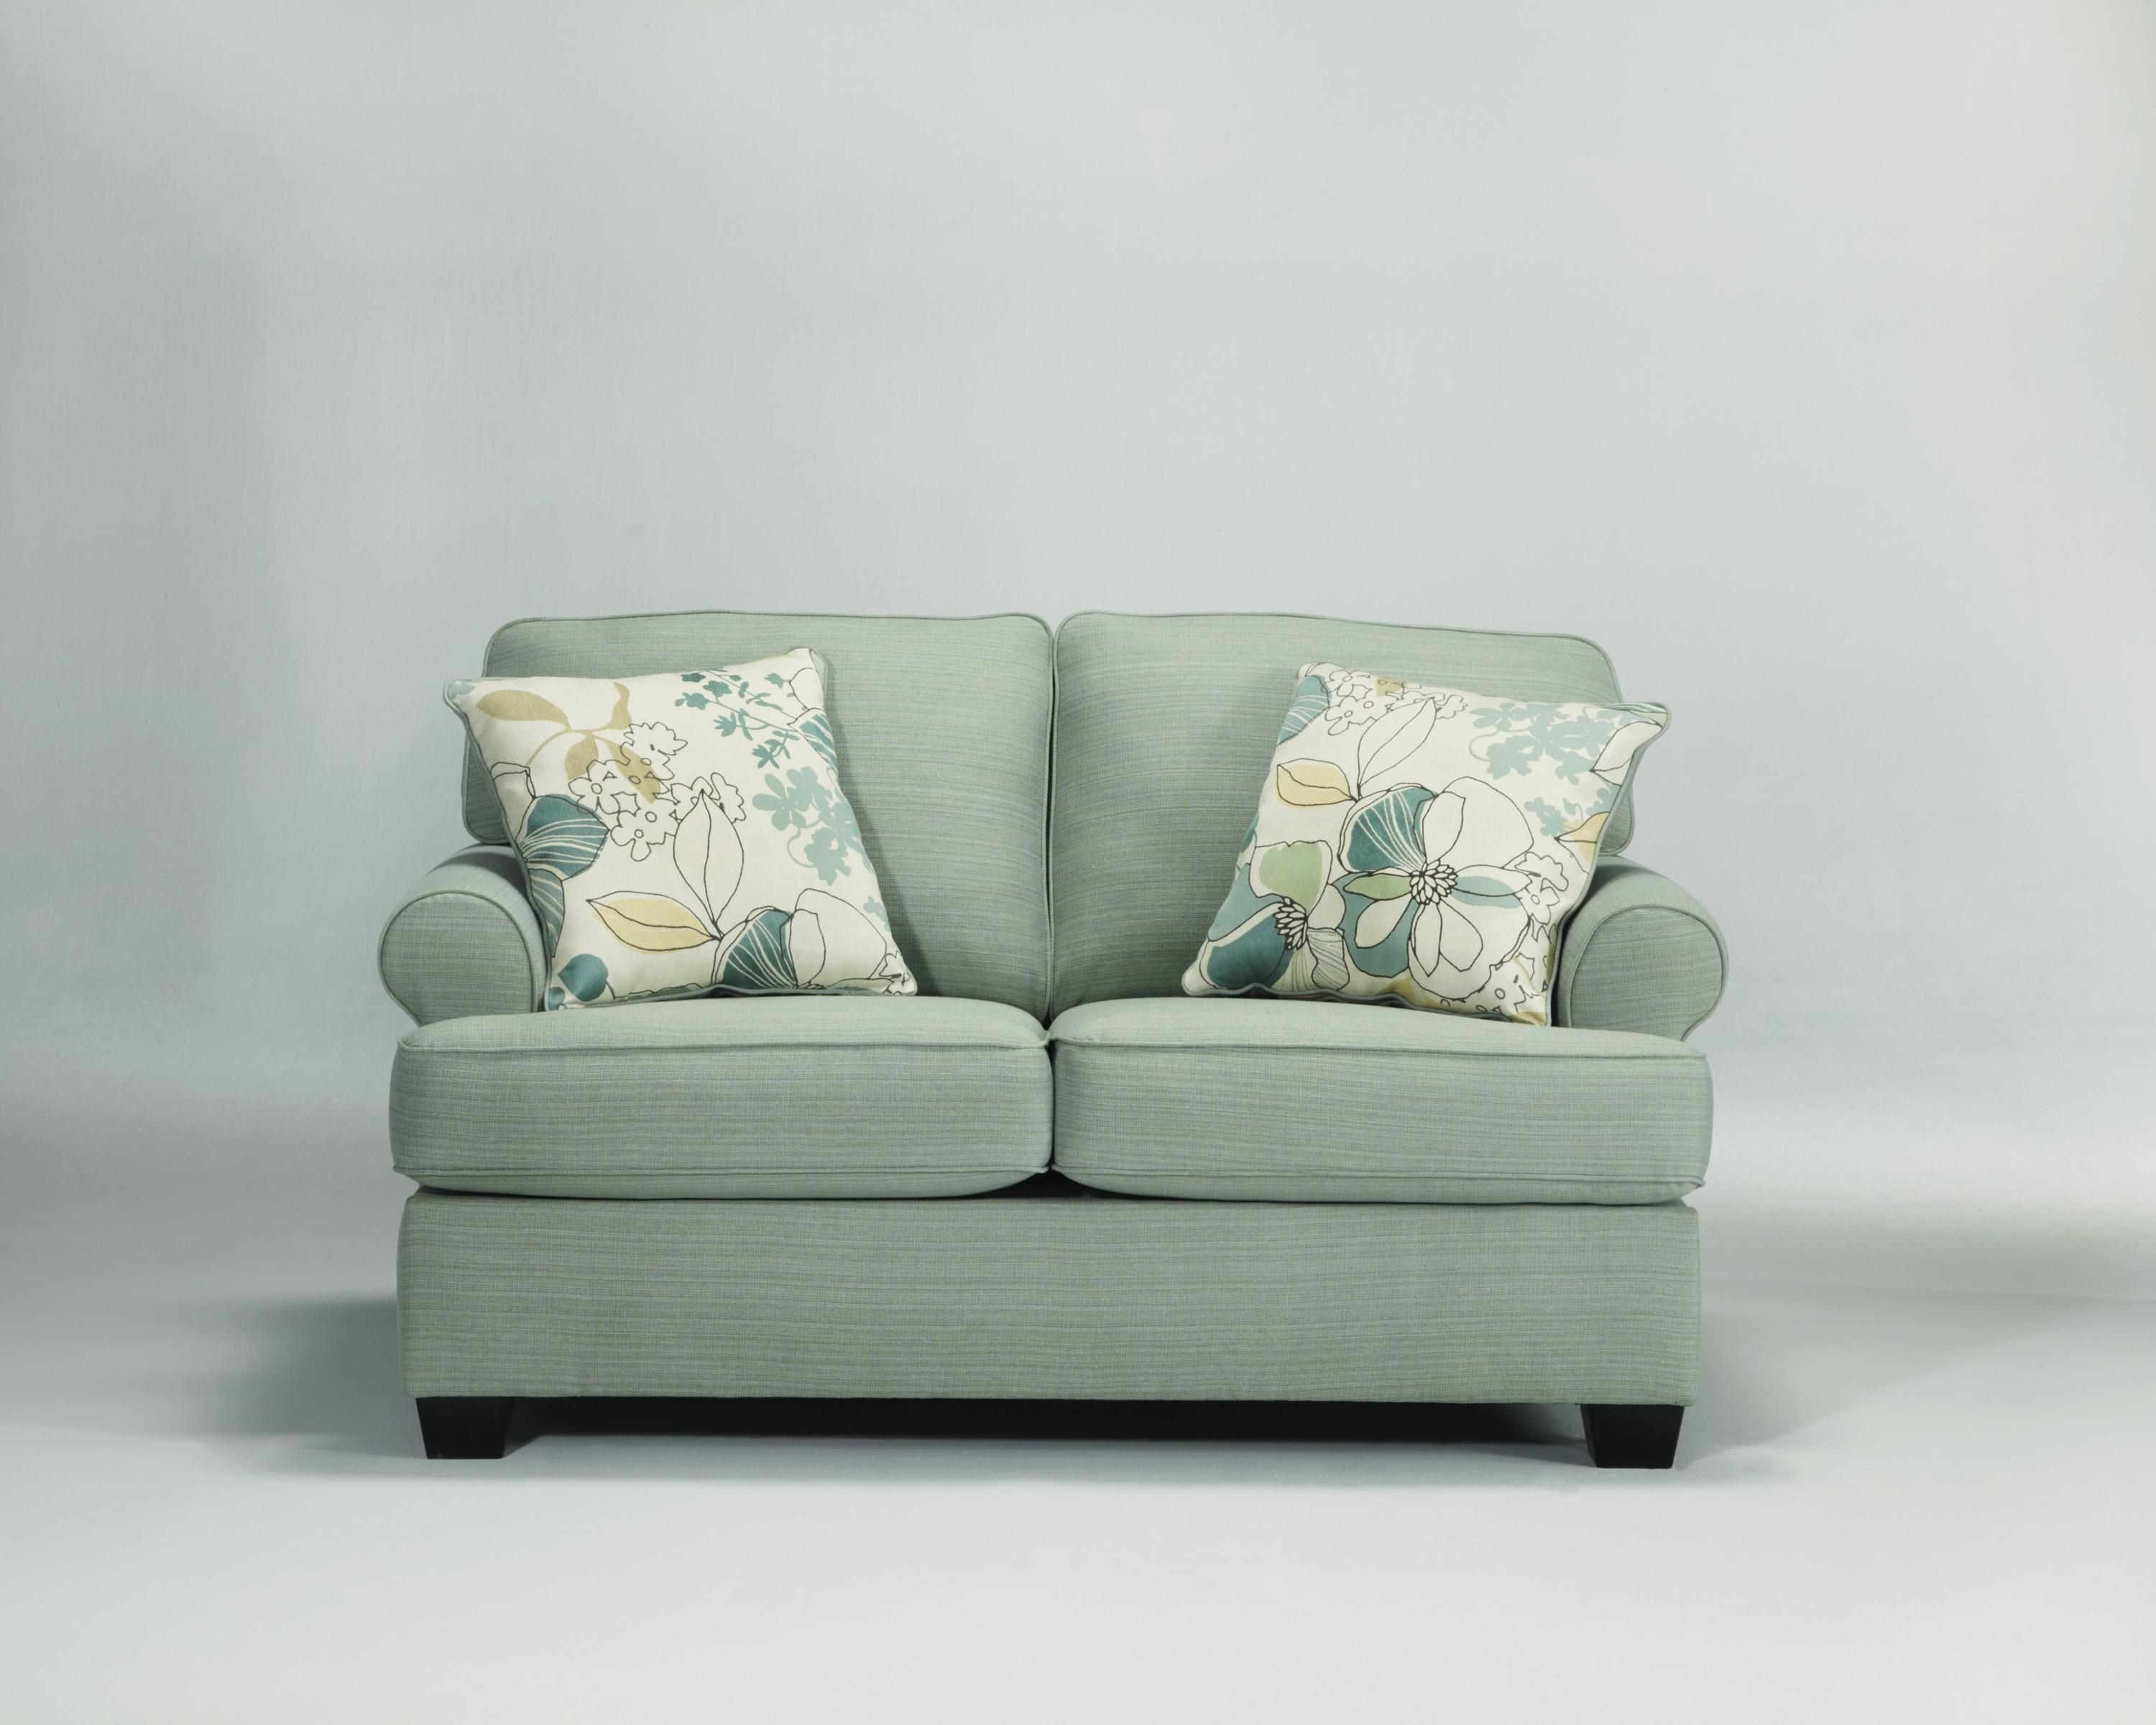 Seafoam Green Sofa With Ideas Hd Gallery 17483 | Kengire Throughout Seafoam Green Sofas (Image 15 of 20)